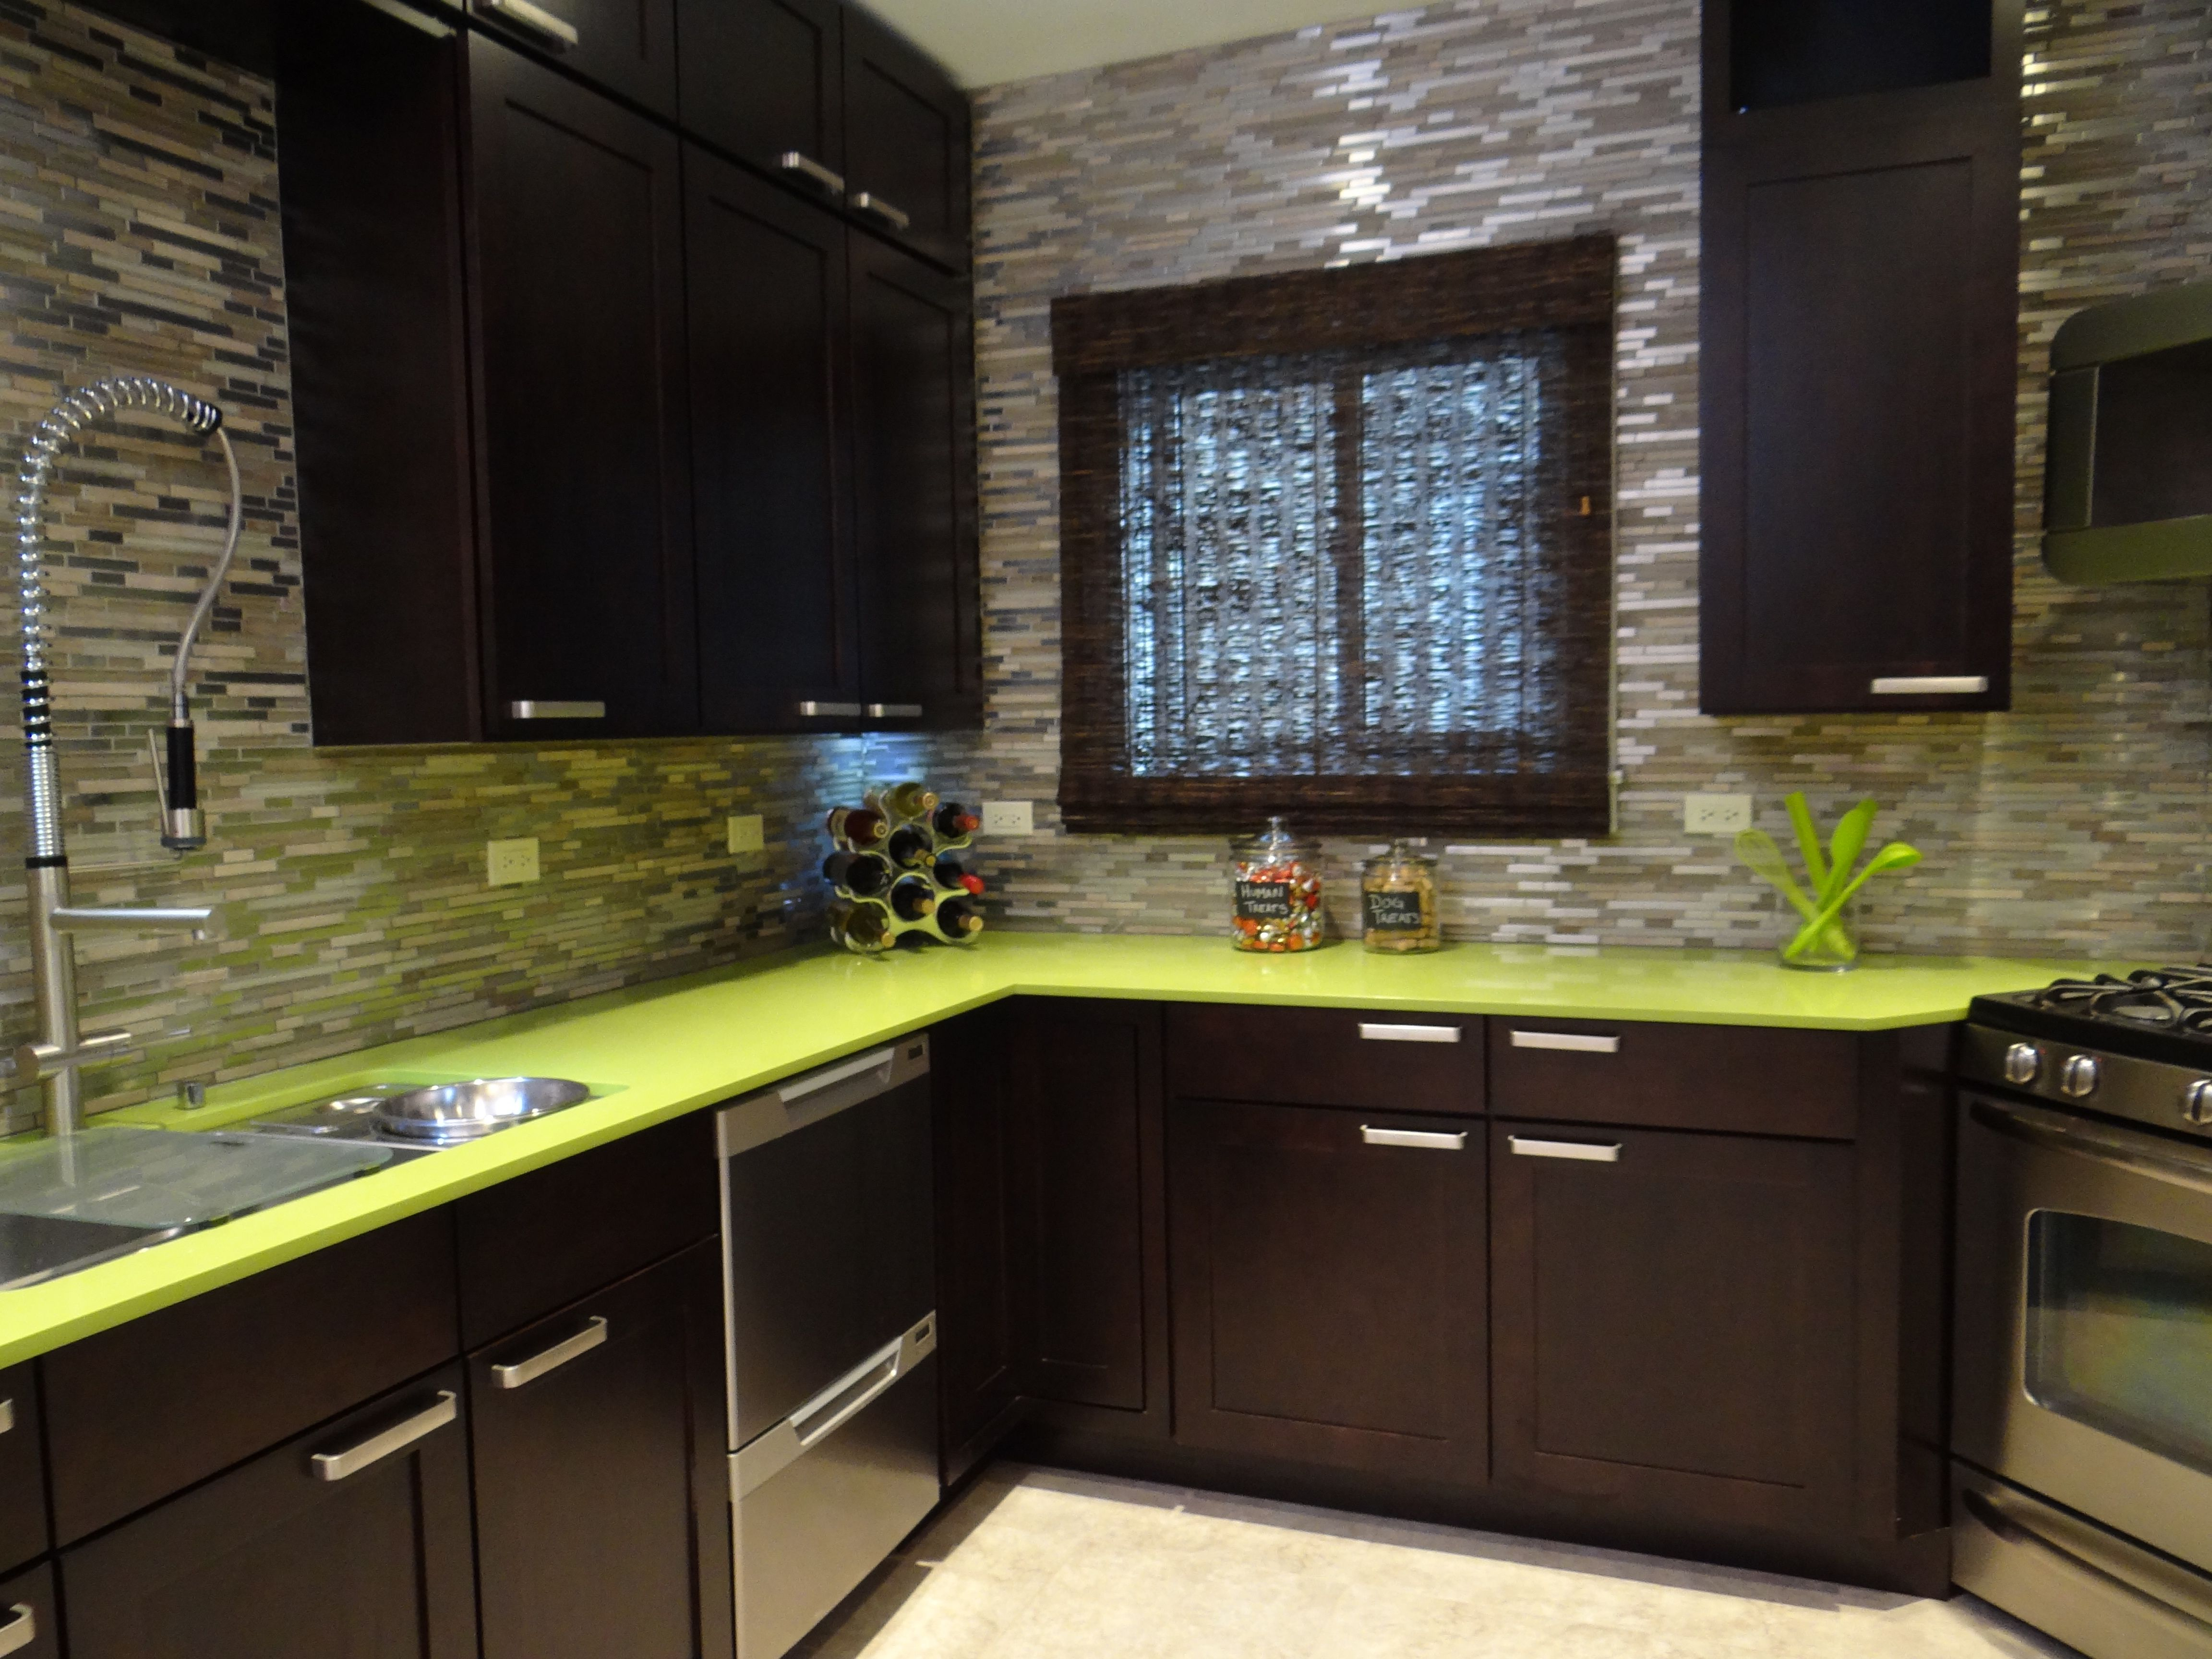 Cabinetry Chosen Home Concepts York Coffee The Cabinetry Featured In The K Diy Kitchen Cabinets Makeover Kitchen Cabinets Makeover Diy Kitchen Cabinets